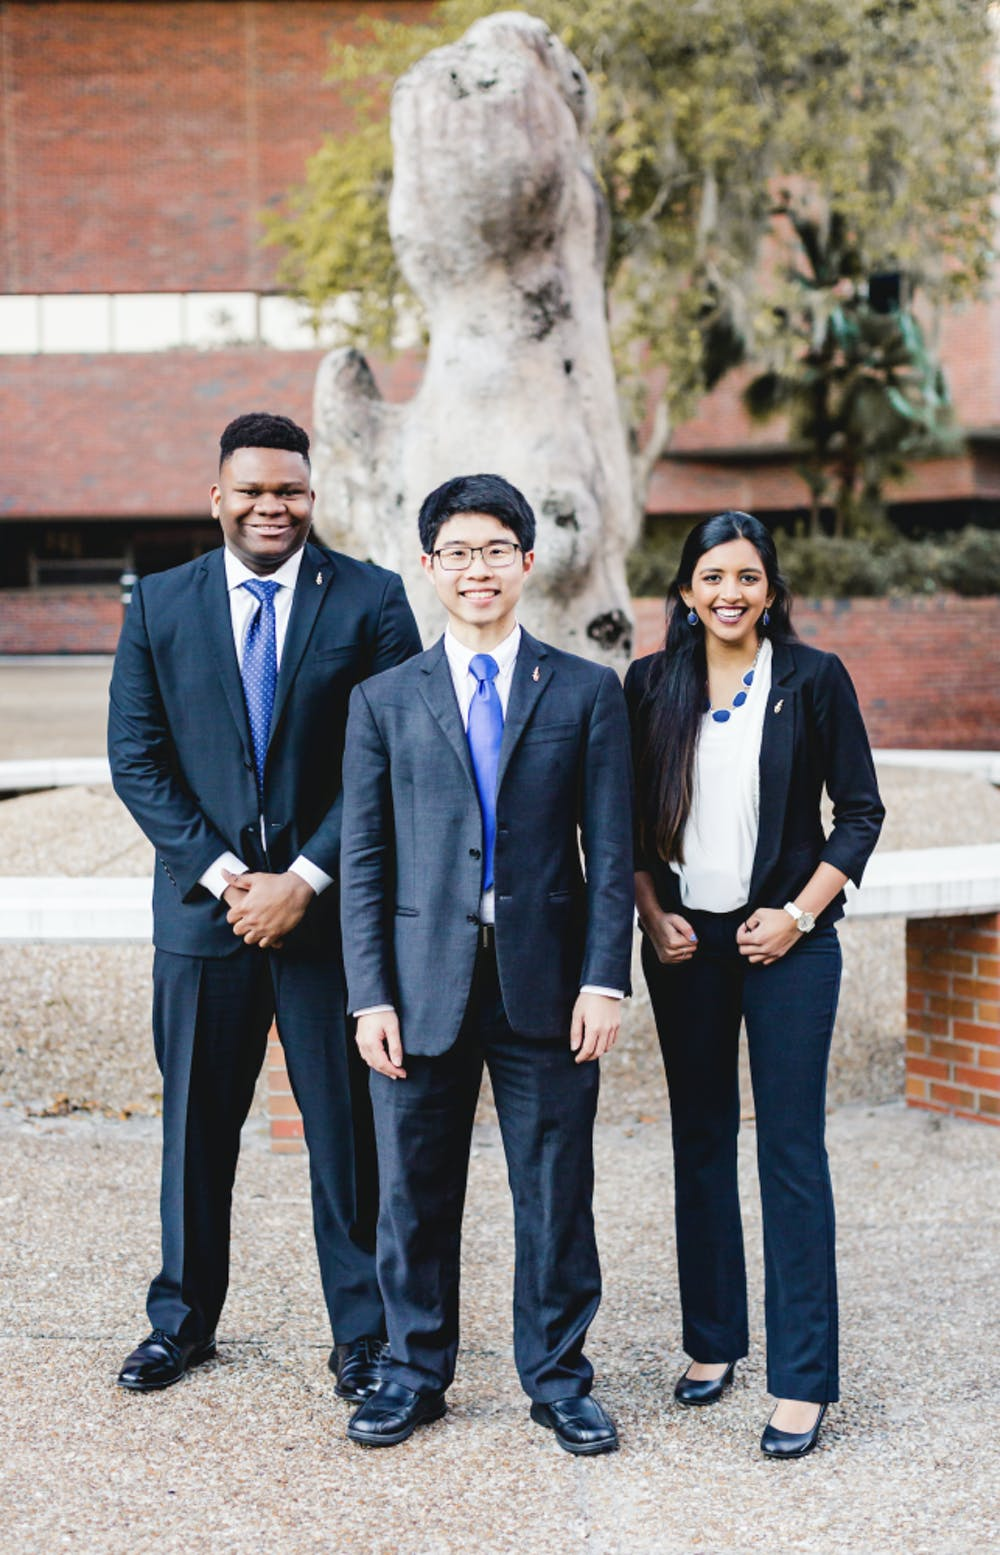 <p>The UF Inspire Party announced its executive ticket with Zachariah Chou, 21, for Student Body president (center); Gouthami Gadamsetty, 20, for Student Body vice president (right); and Mackintosh Joachim, 19, for Student Body treasurer (left). Courtesy to The Alligator</p>